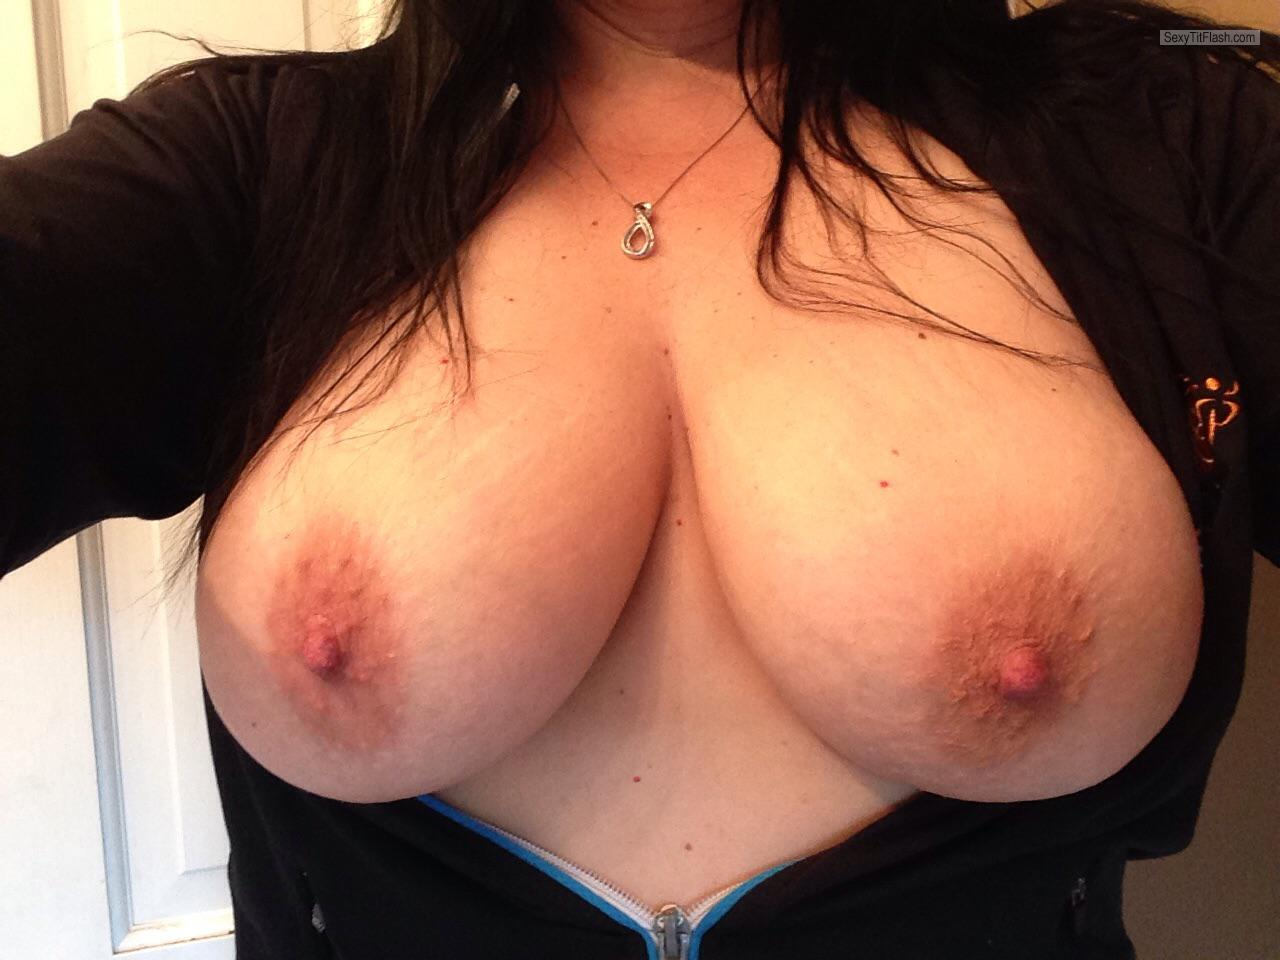 My Big Tits Selfie by Shannon